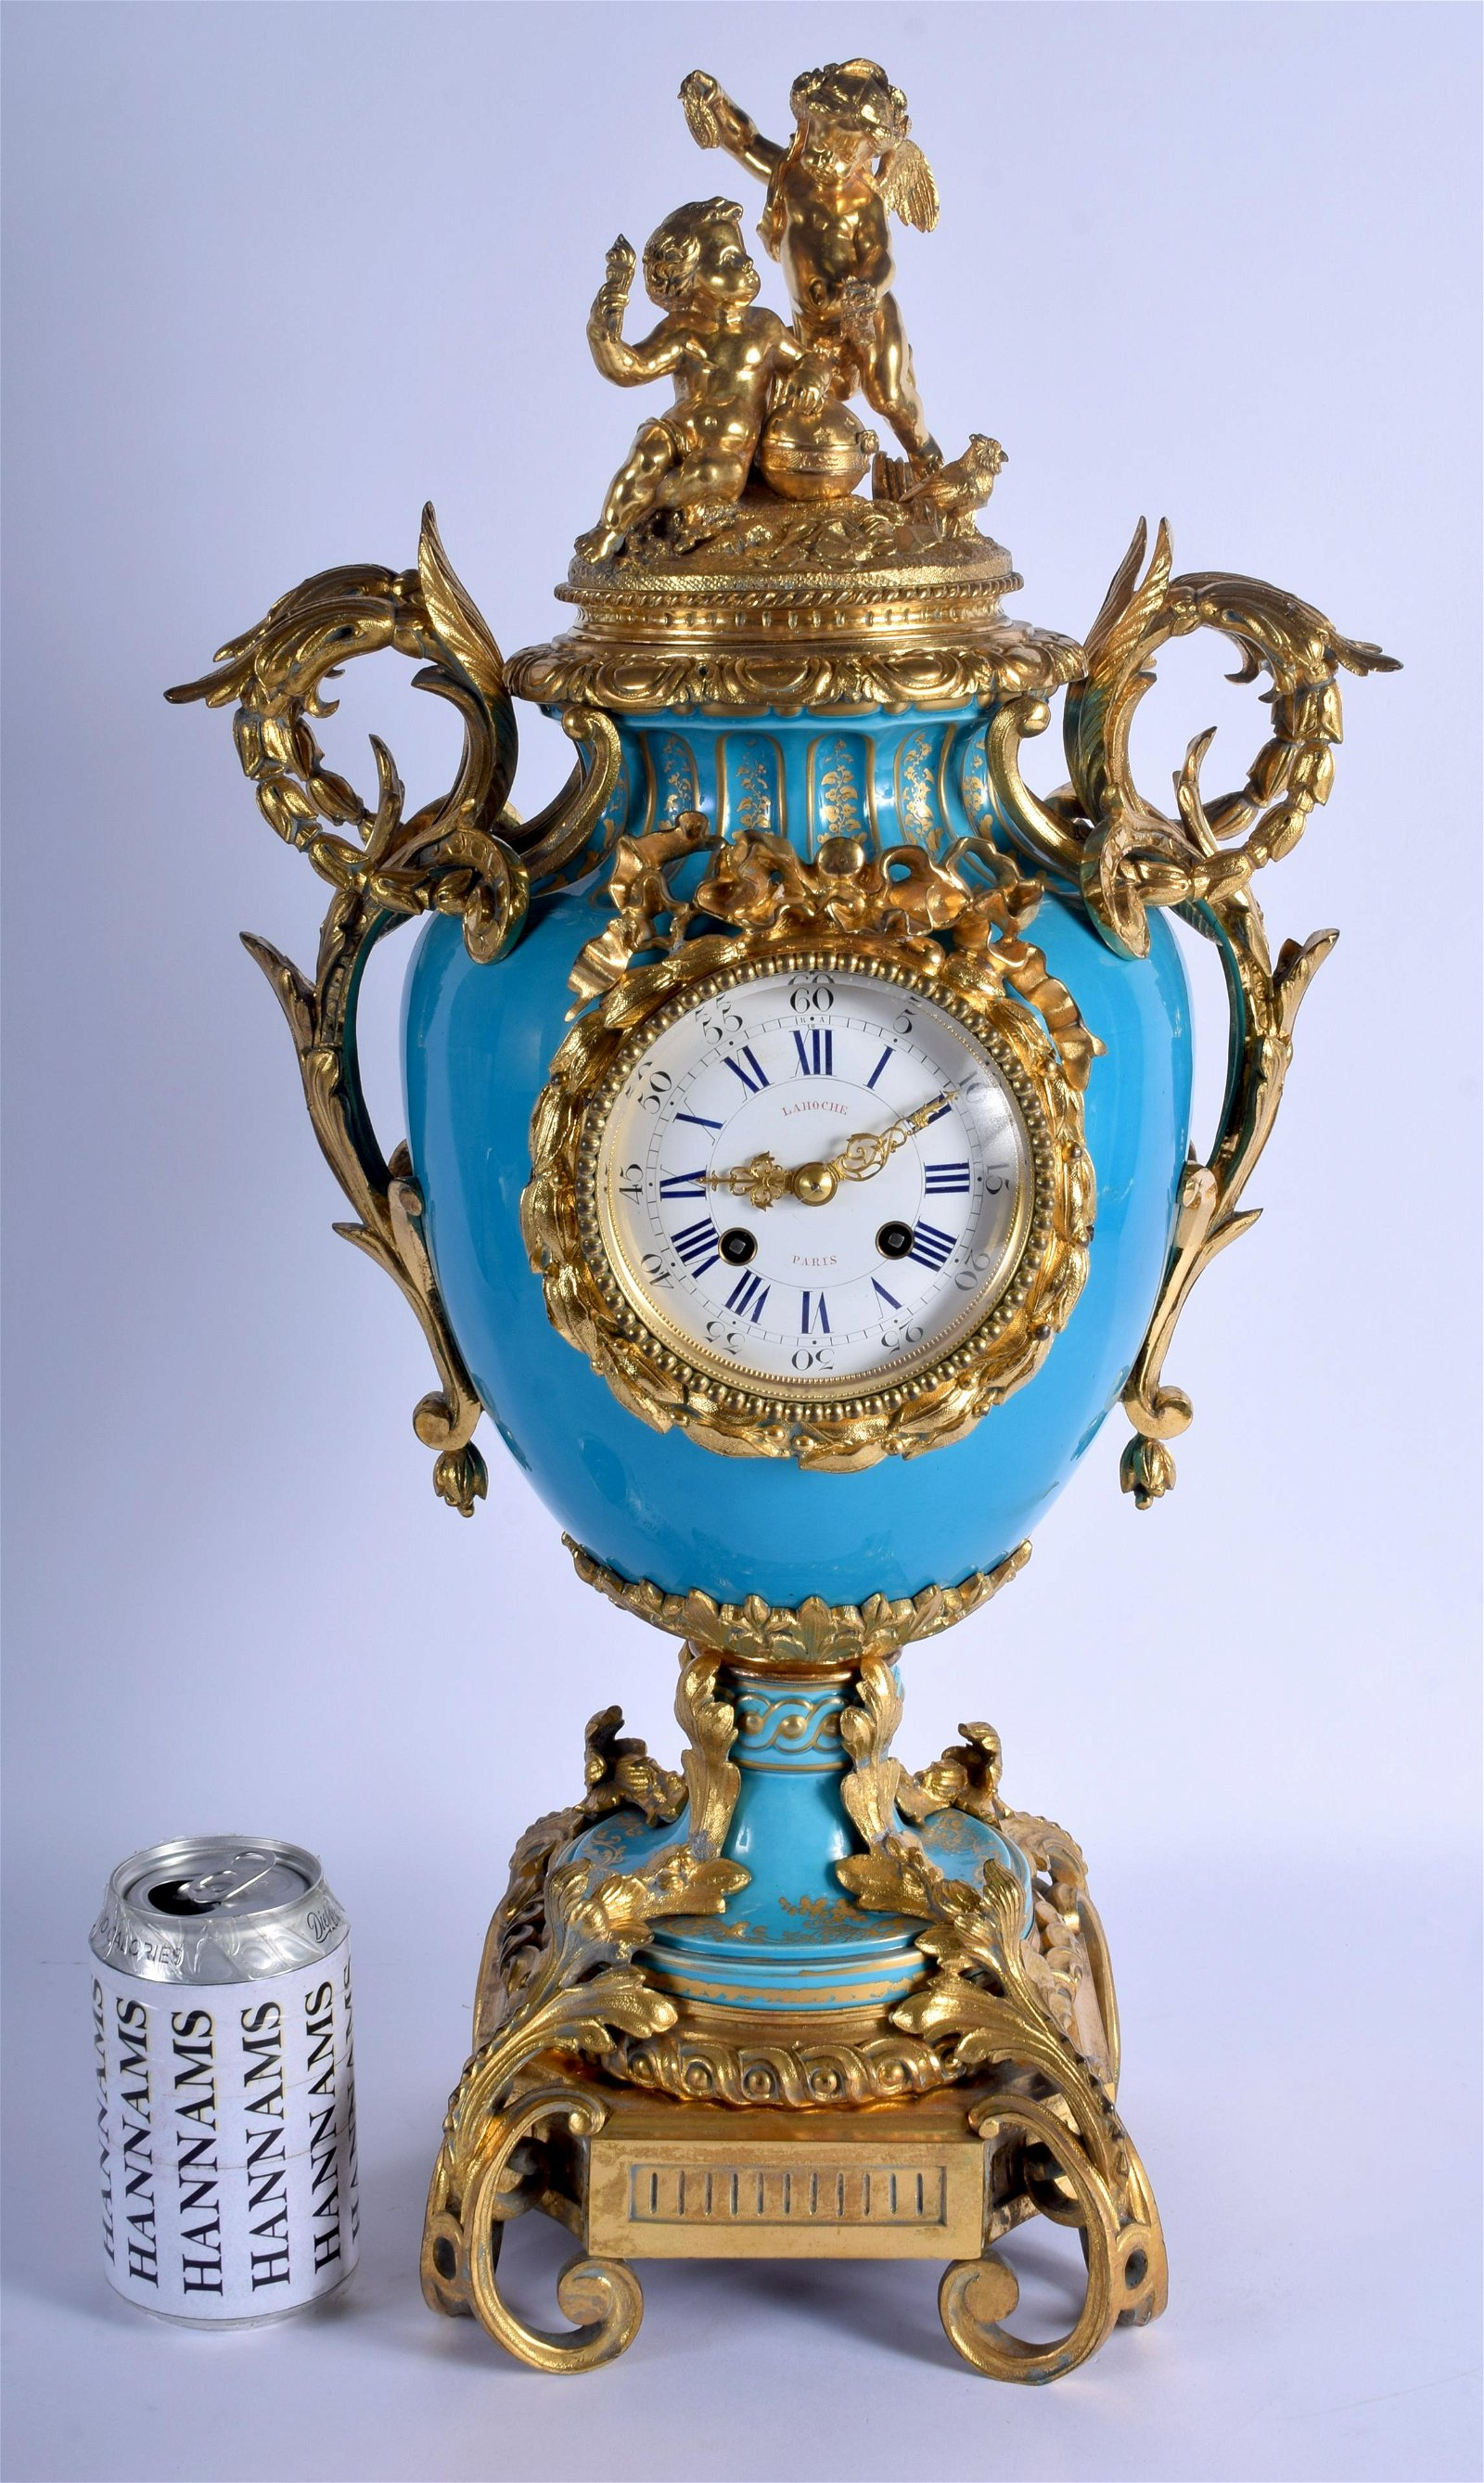 A LARGE 19TH CENTURY FRENCH ORMOLU AND BLUE SEVRES